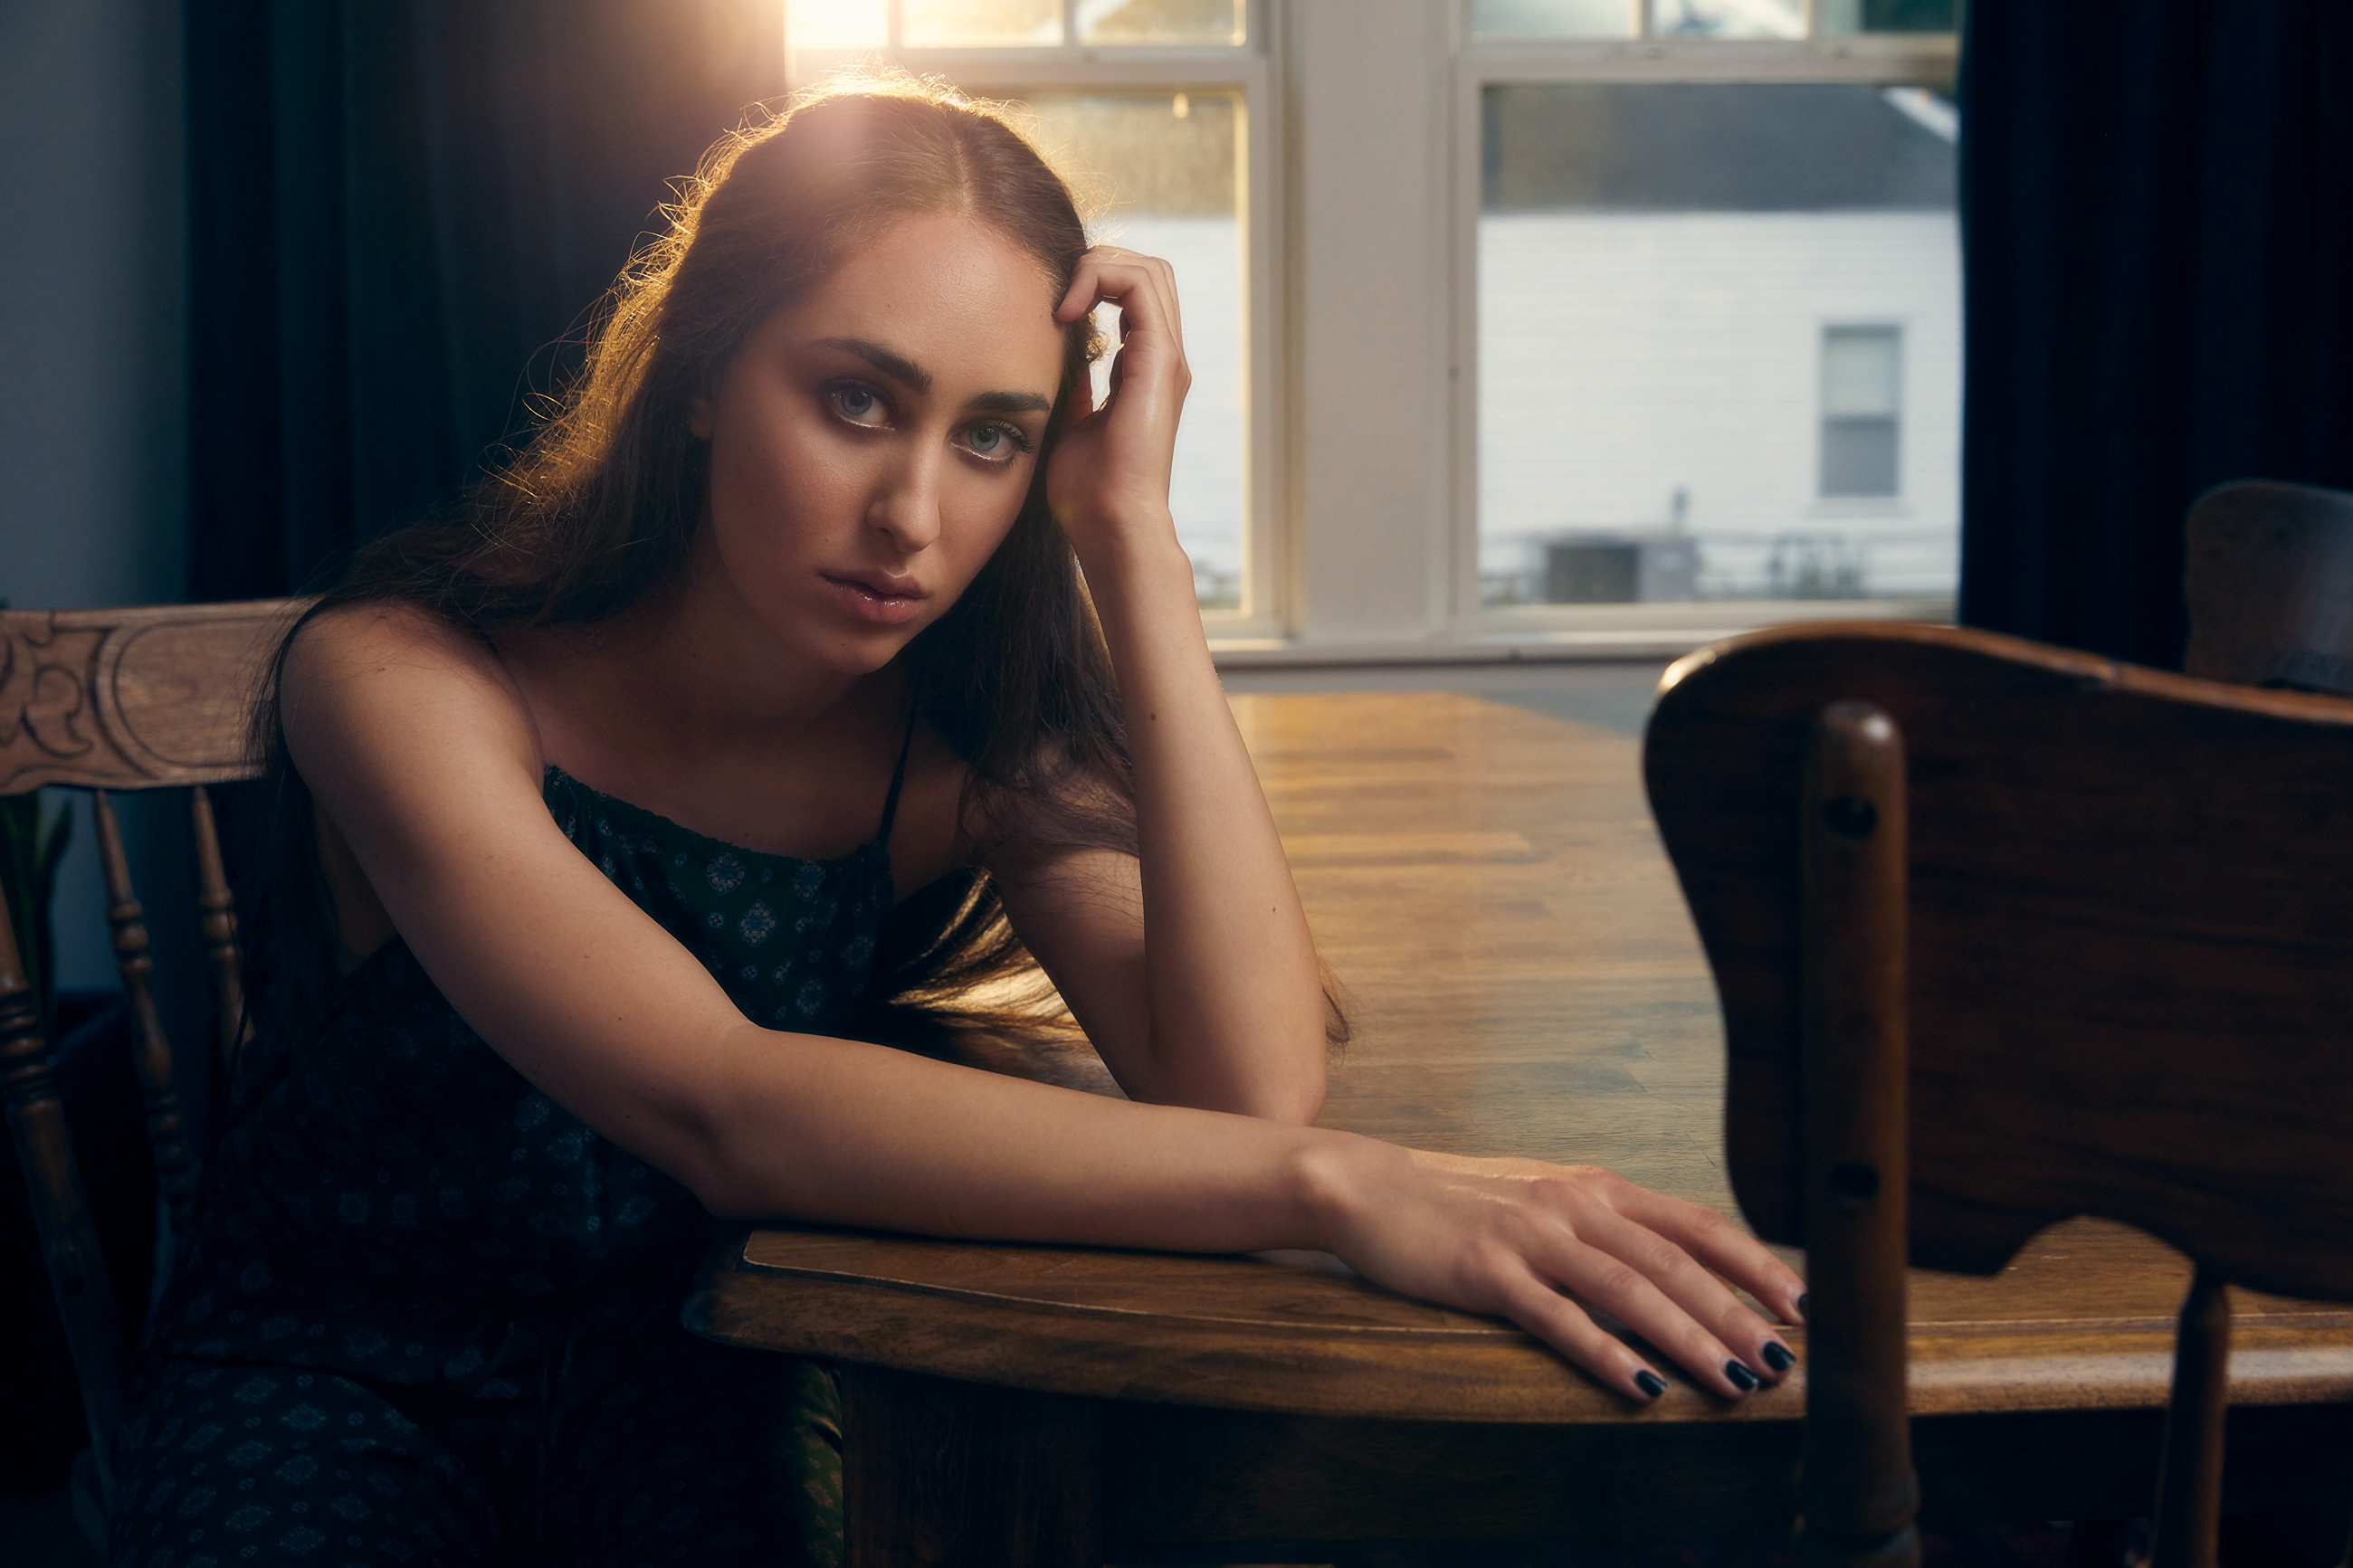 Fleurie leaning on table